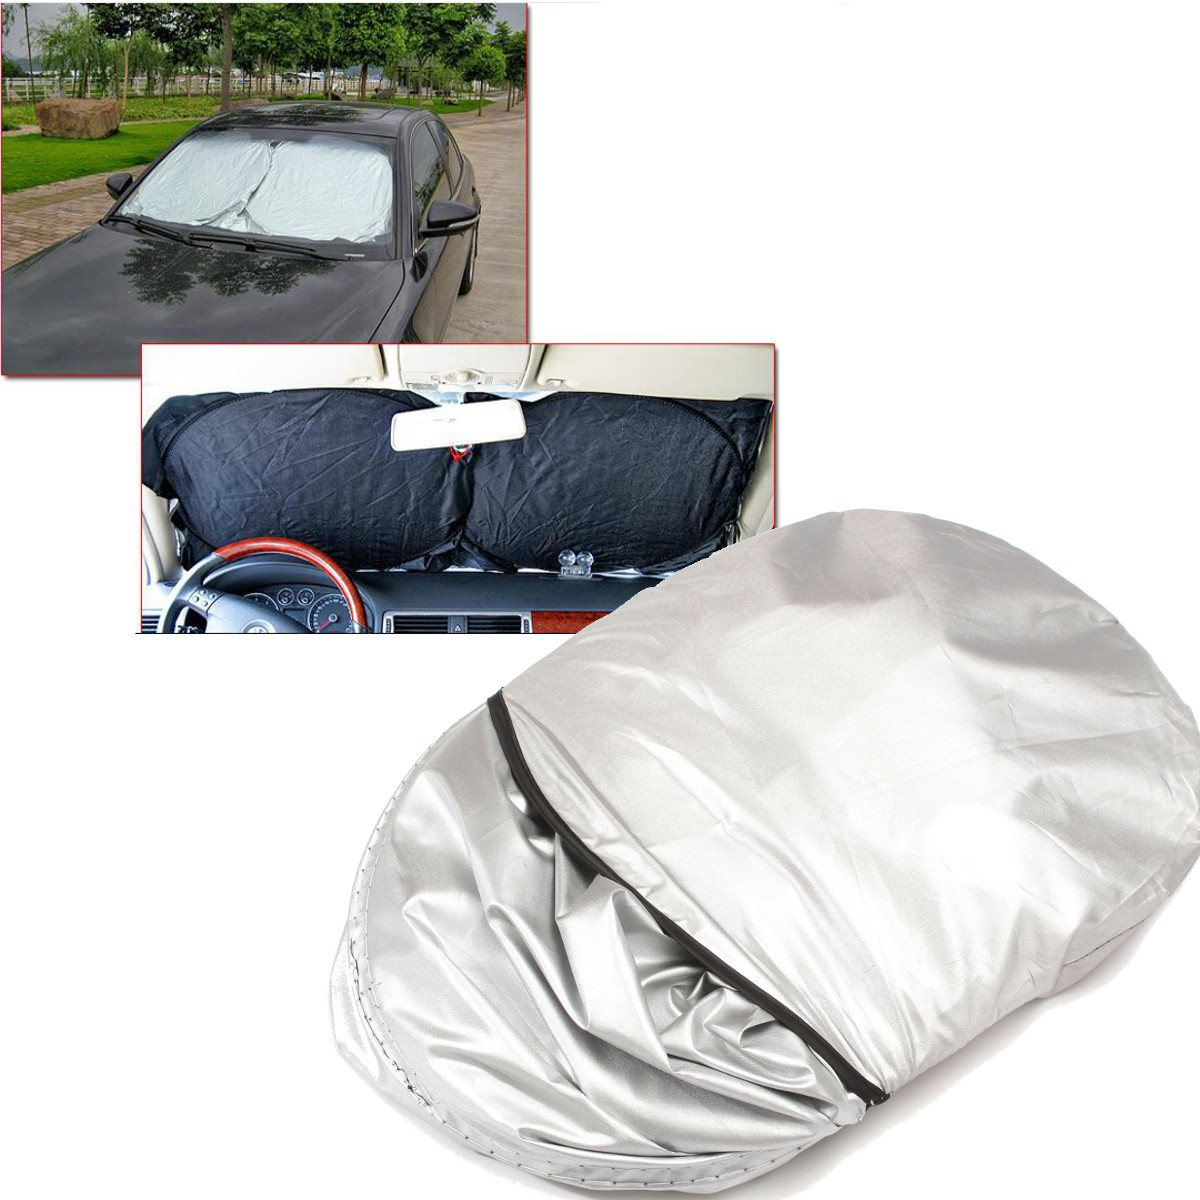 190 x 90cm Folding SUV Truck Car Front Rear Window Sun Shade Visor Windshield Block Cover